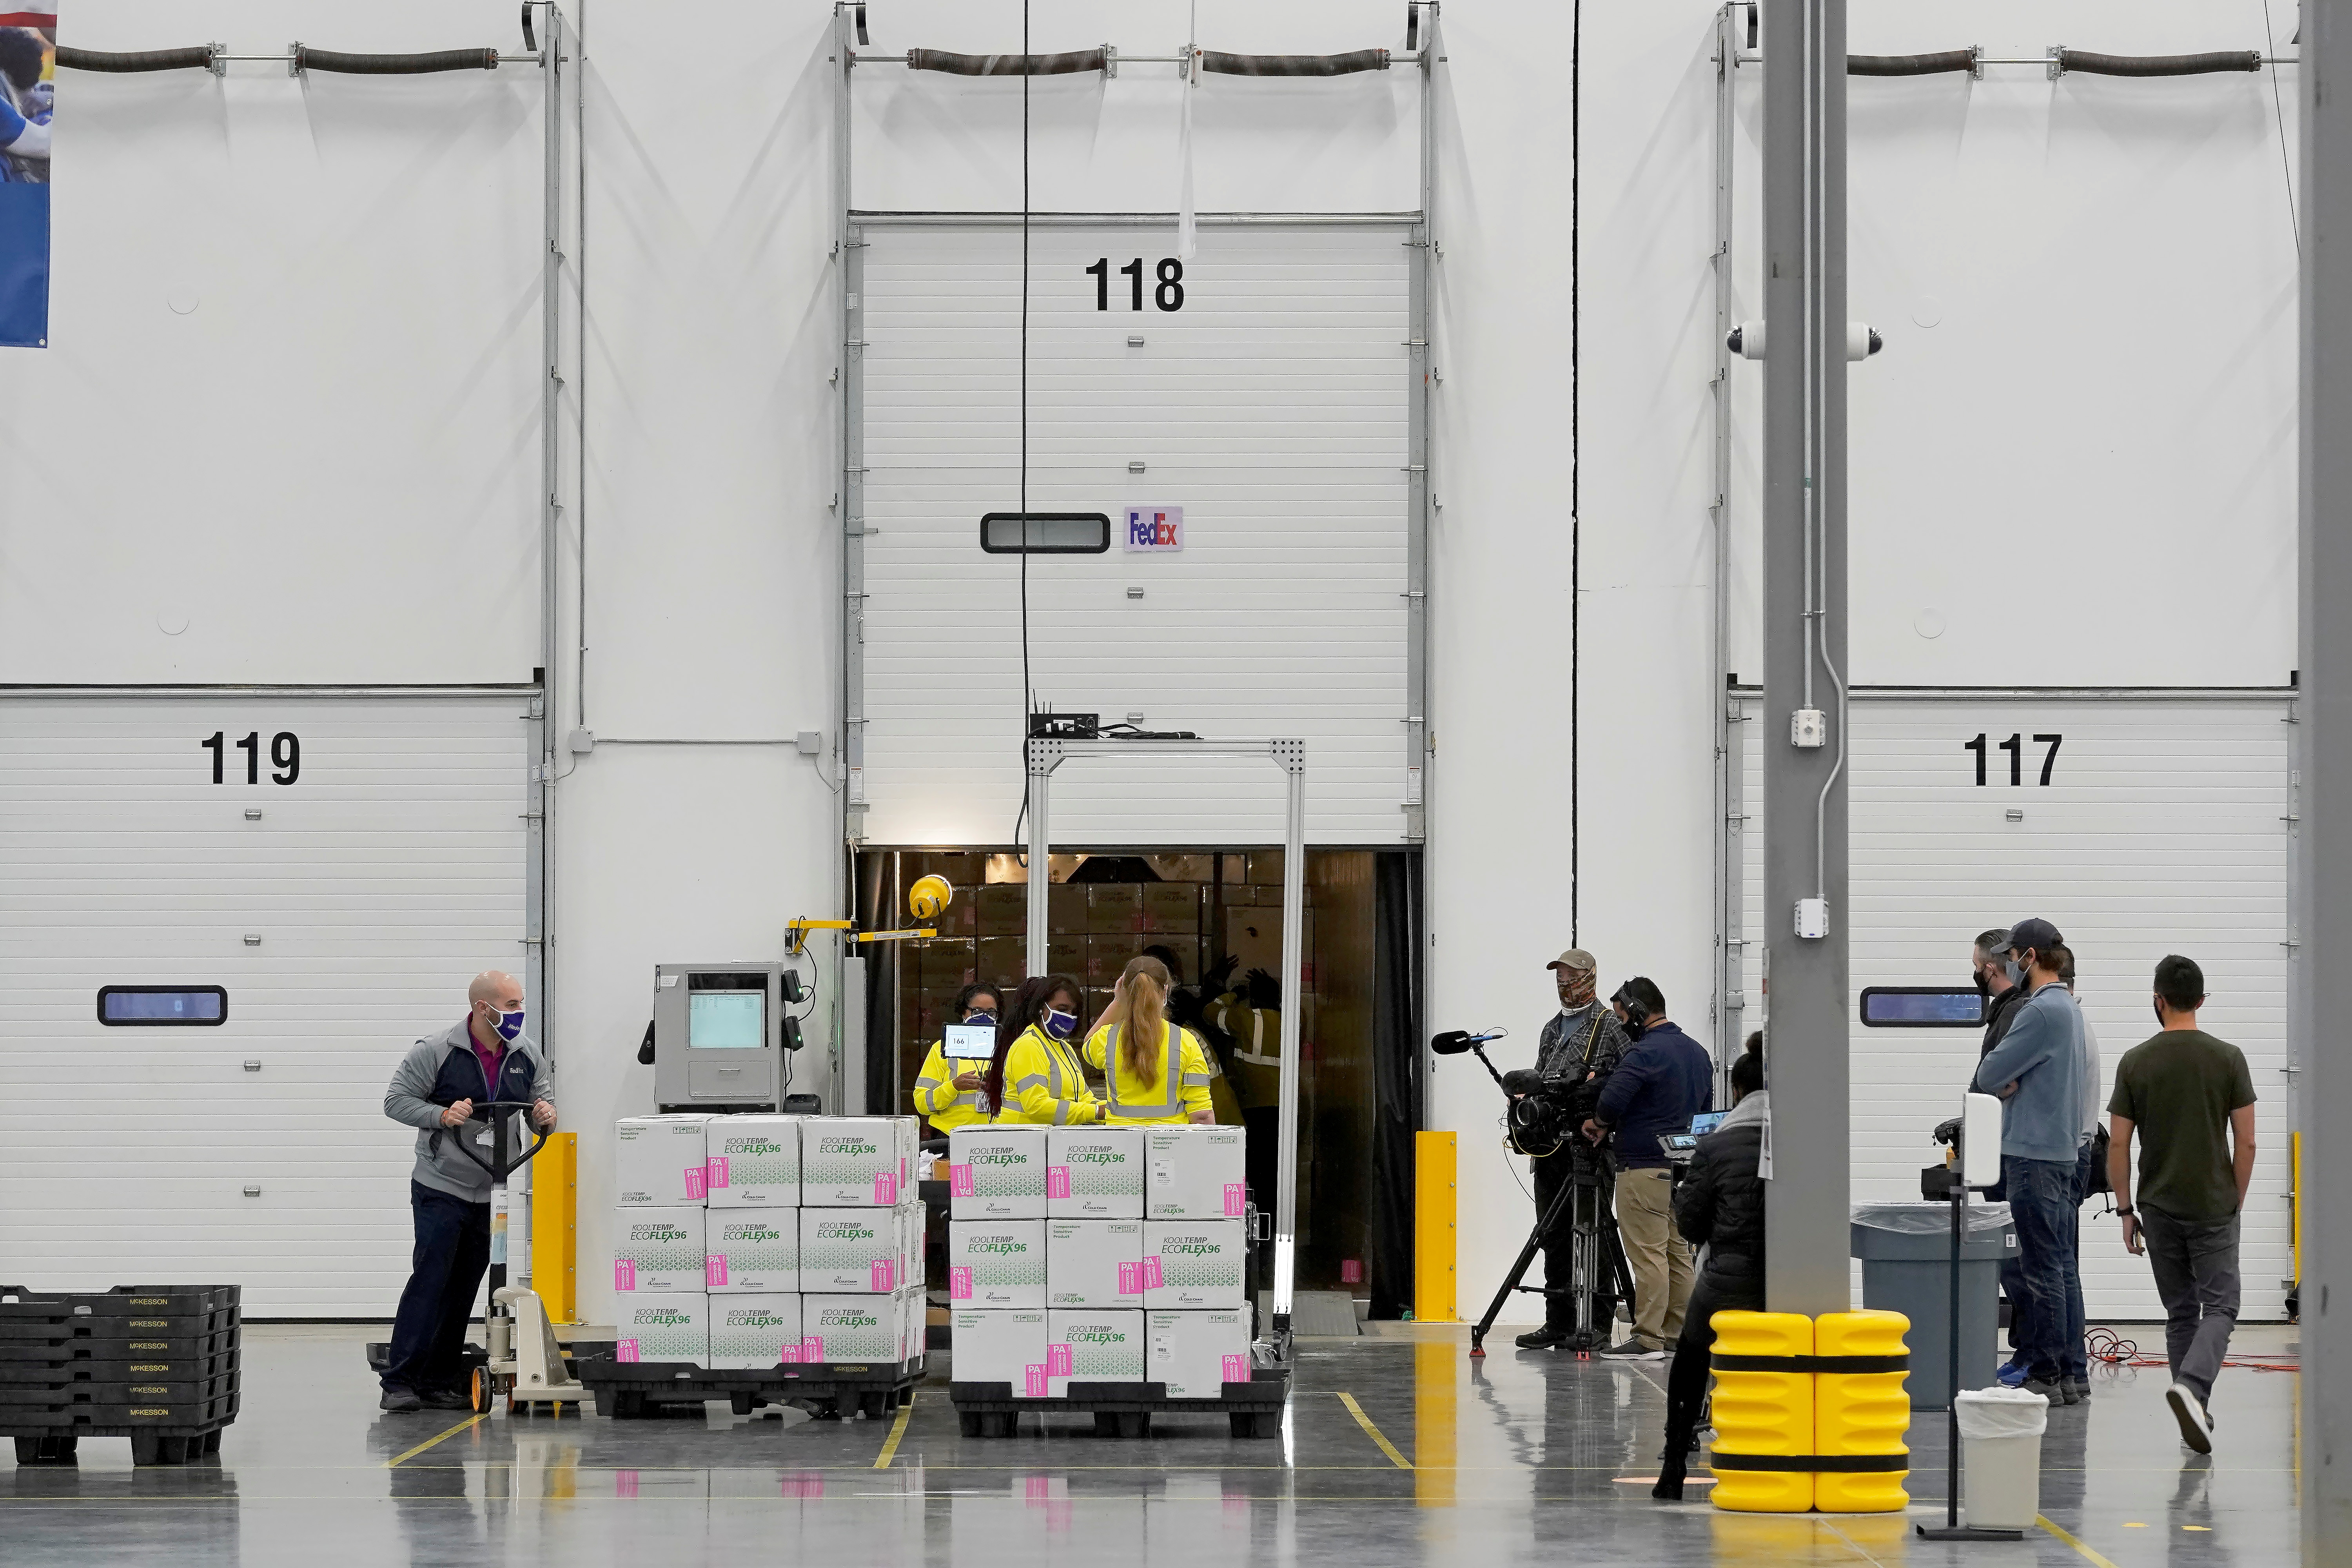 Boxes containing the Moderna COVID-19 vaccine are prepared to be shipped at the McKesson distribution center in Olive Branch, Mississippi, U.S. December 20, 2020. Paul Sancya/Pool via REUTERS